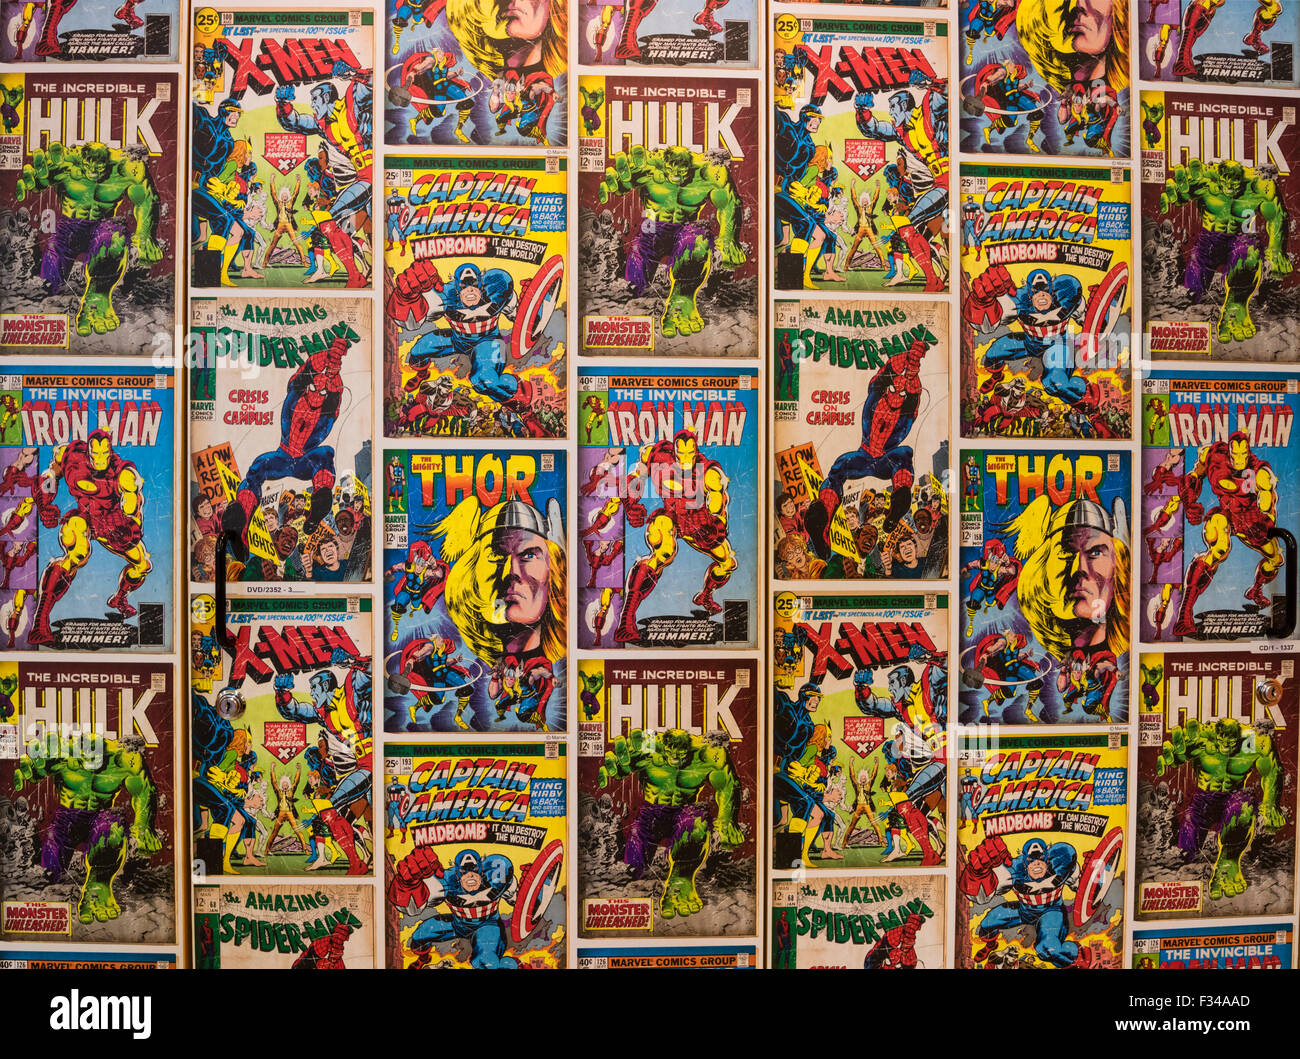 Comic Book Cover Background ~ Wallpaper display created from covers of marvel comics